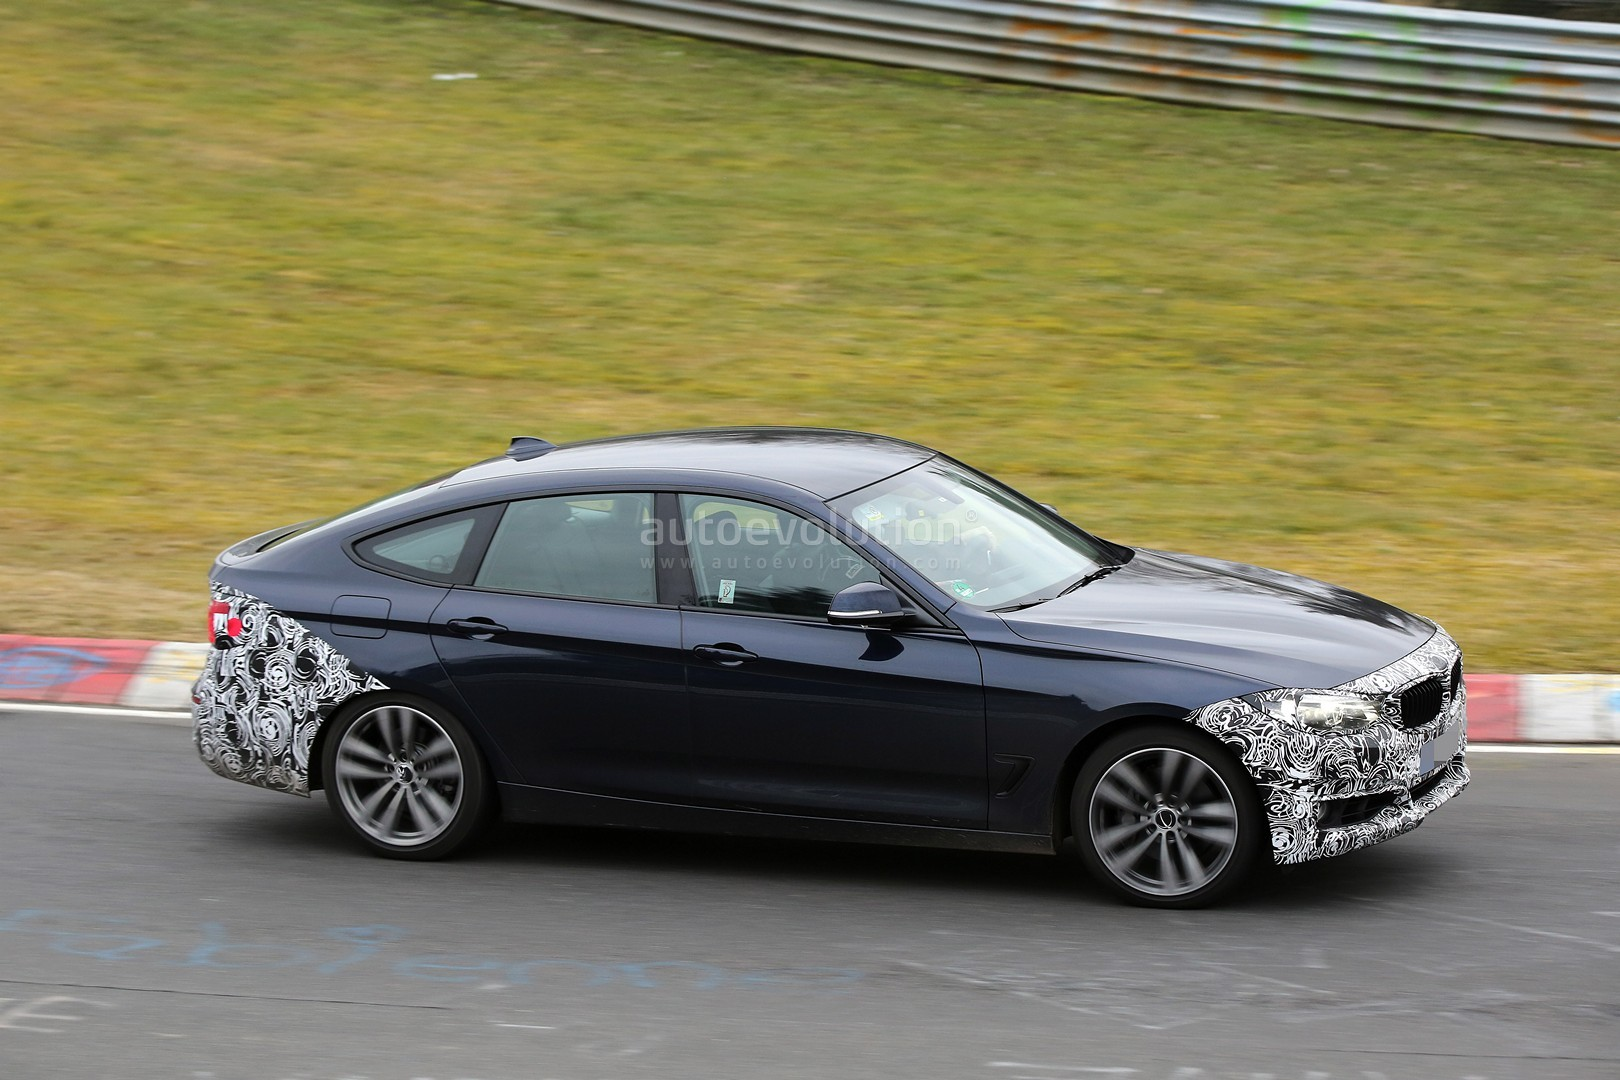 2017 bmw 3 series gt facelift spied testing in germany. Black Bedroom Furniture Sets. Home Design Ideas